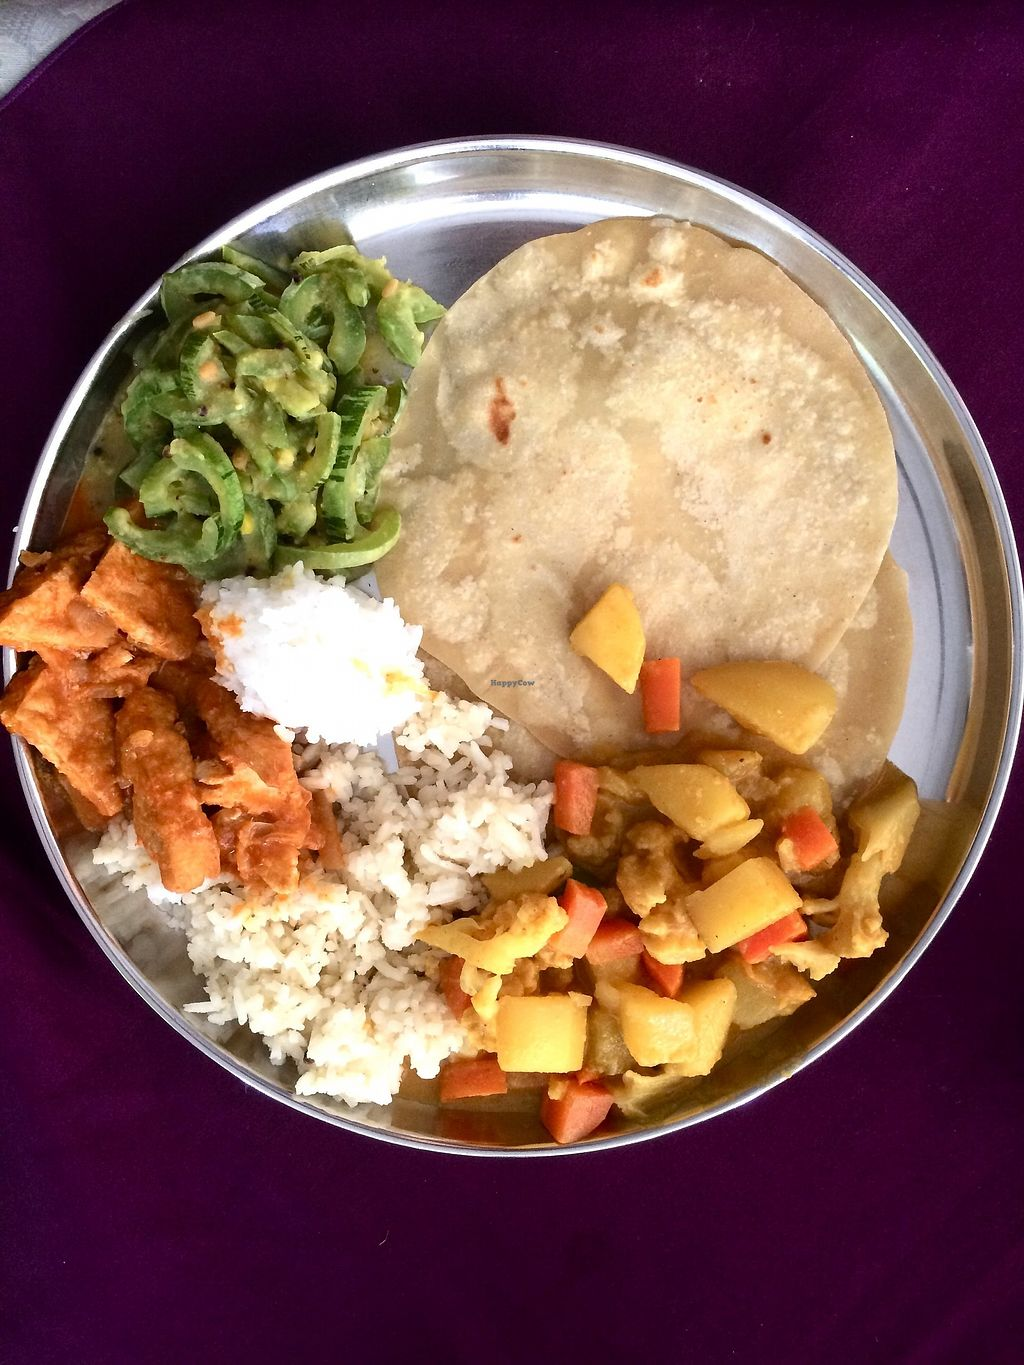 """Photo of Annalakshmi Temple of Fine Arts  by <a href=""""/members/profile/LaurenceMontreuil"""">LaurenceMontreuil</a> <br/>Set meal <br/> January 23, 2018  - <a href='/contact/abuse/image/129/350051'>Report</a>"""